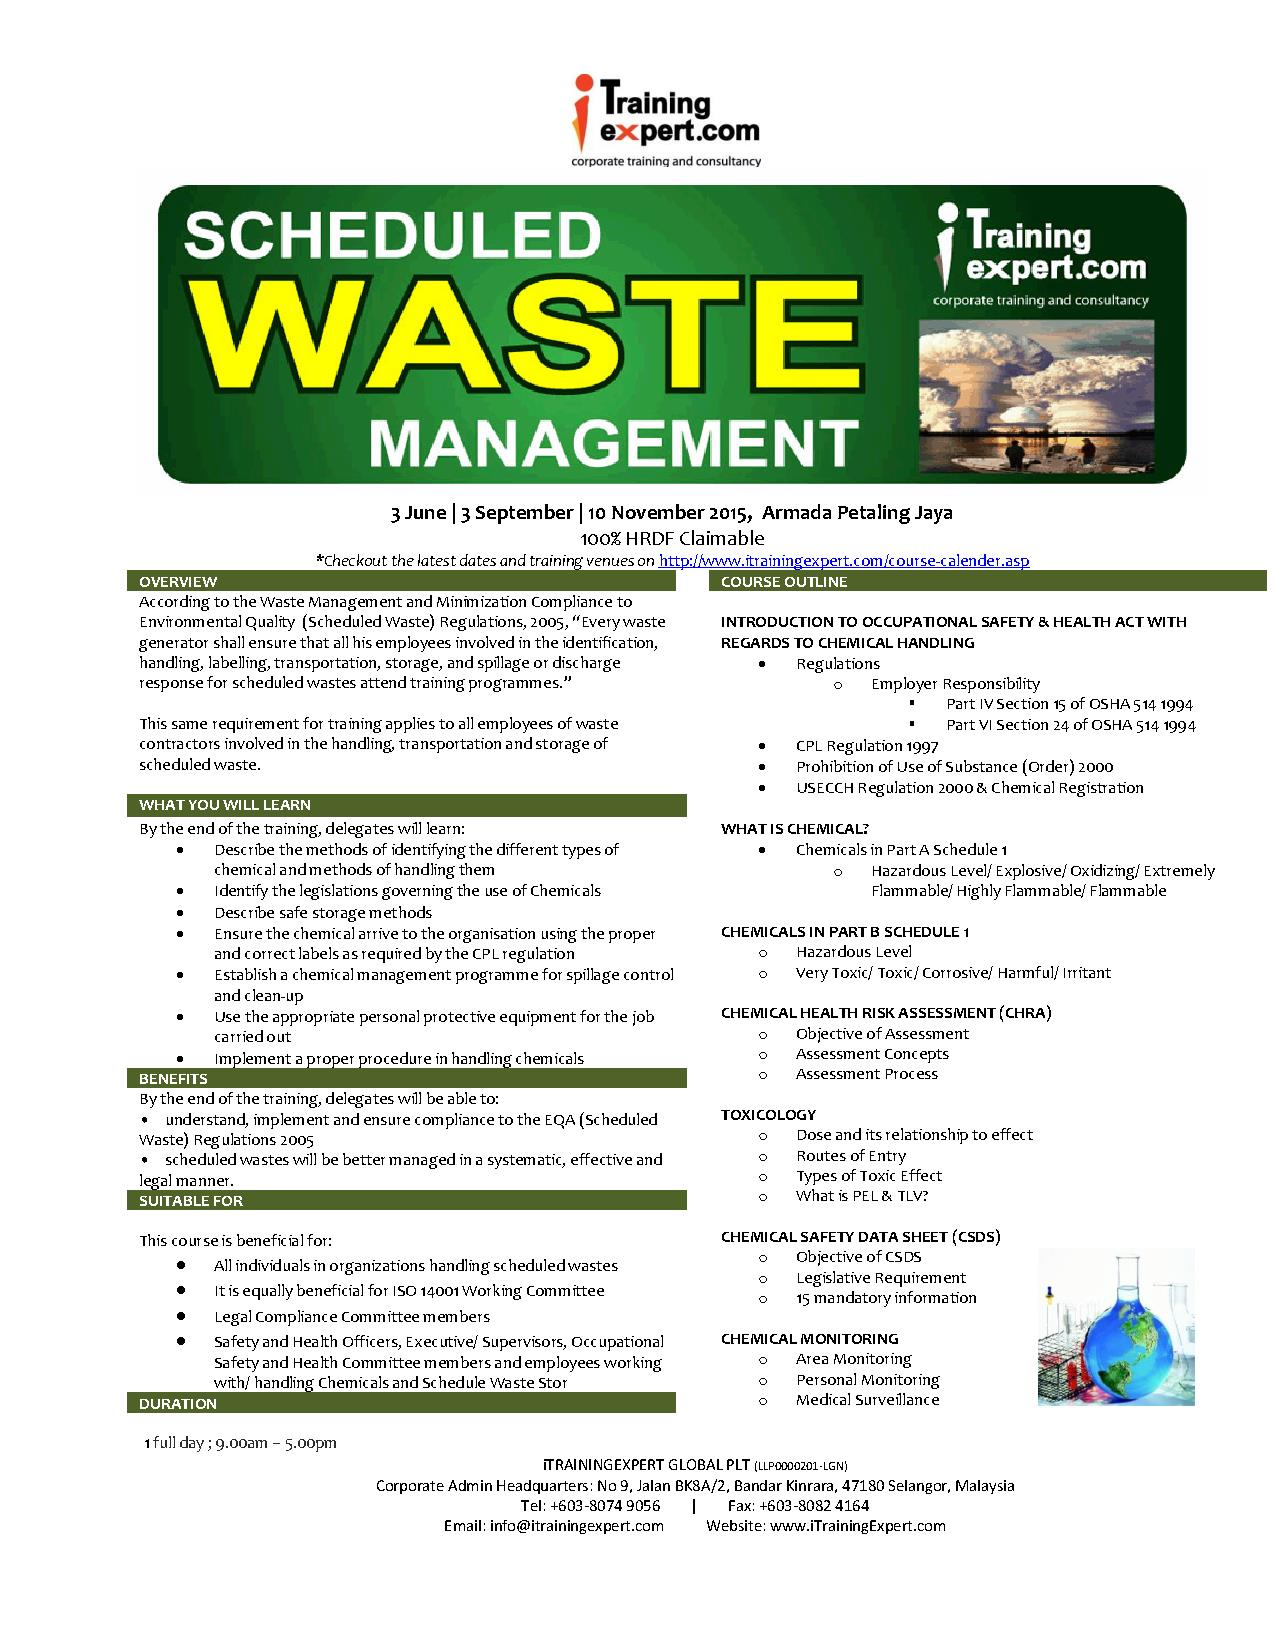 Scheduled and Chemical Waste Management Public Program Course ...